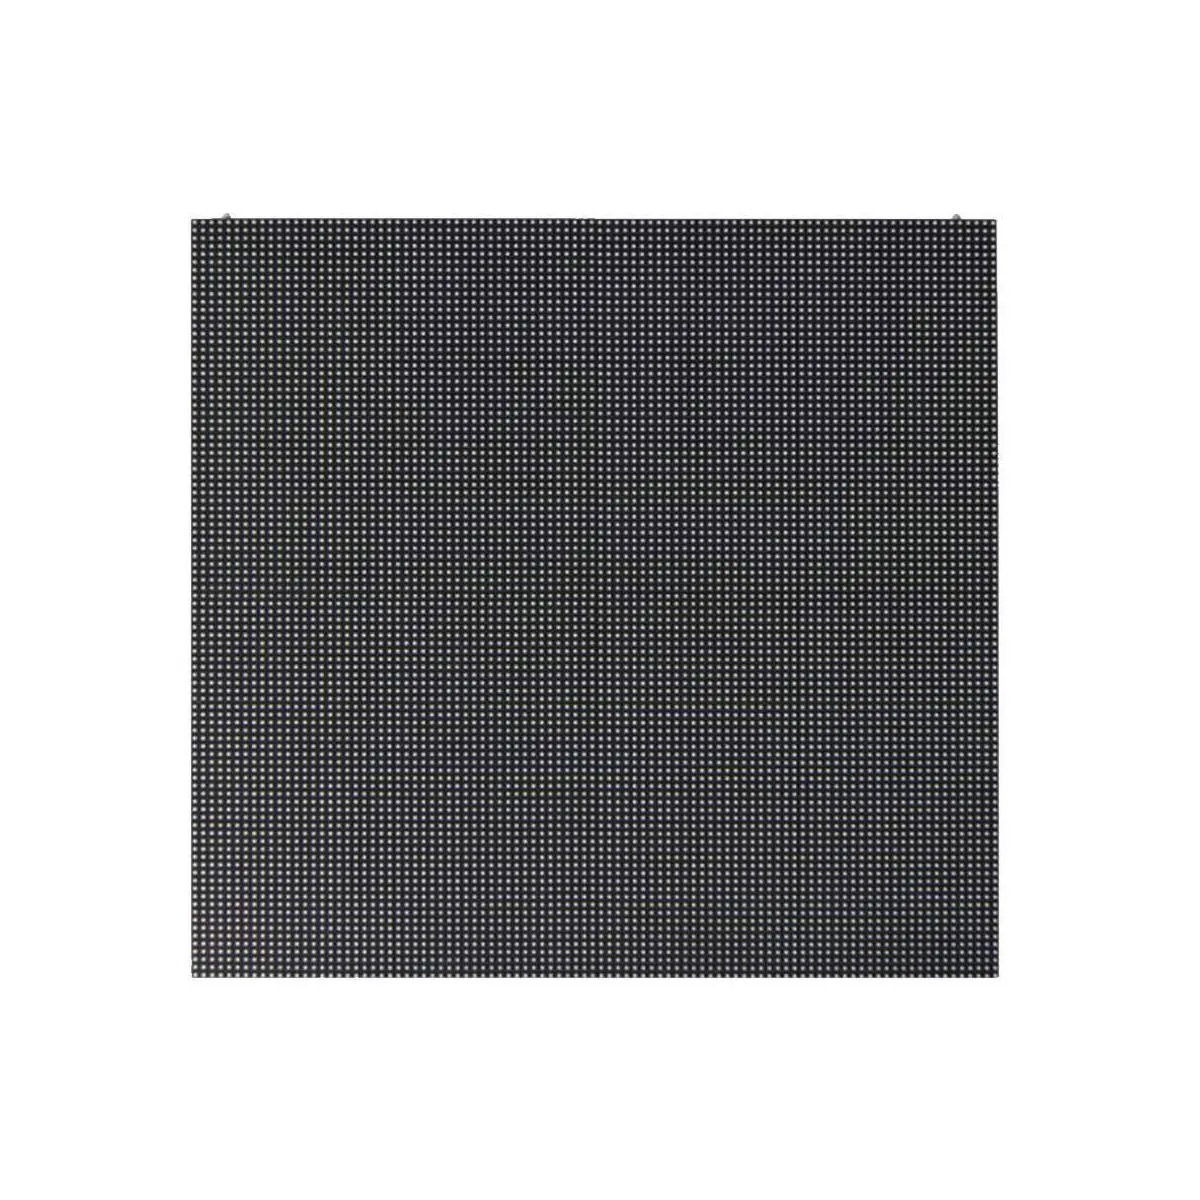 Painel de Led Proled PH-4,5mm Black Indoor com Case